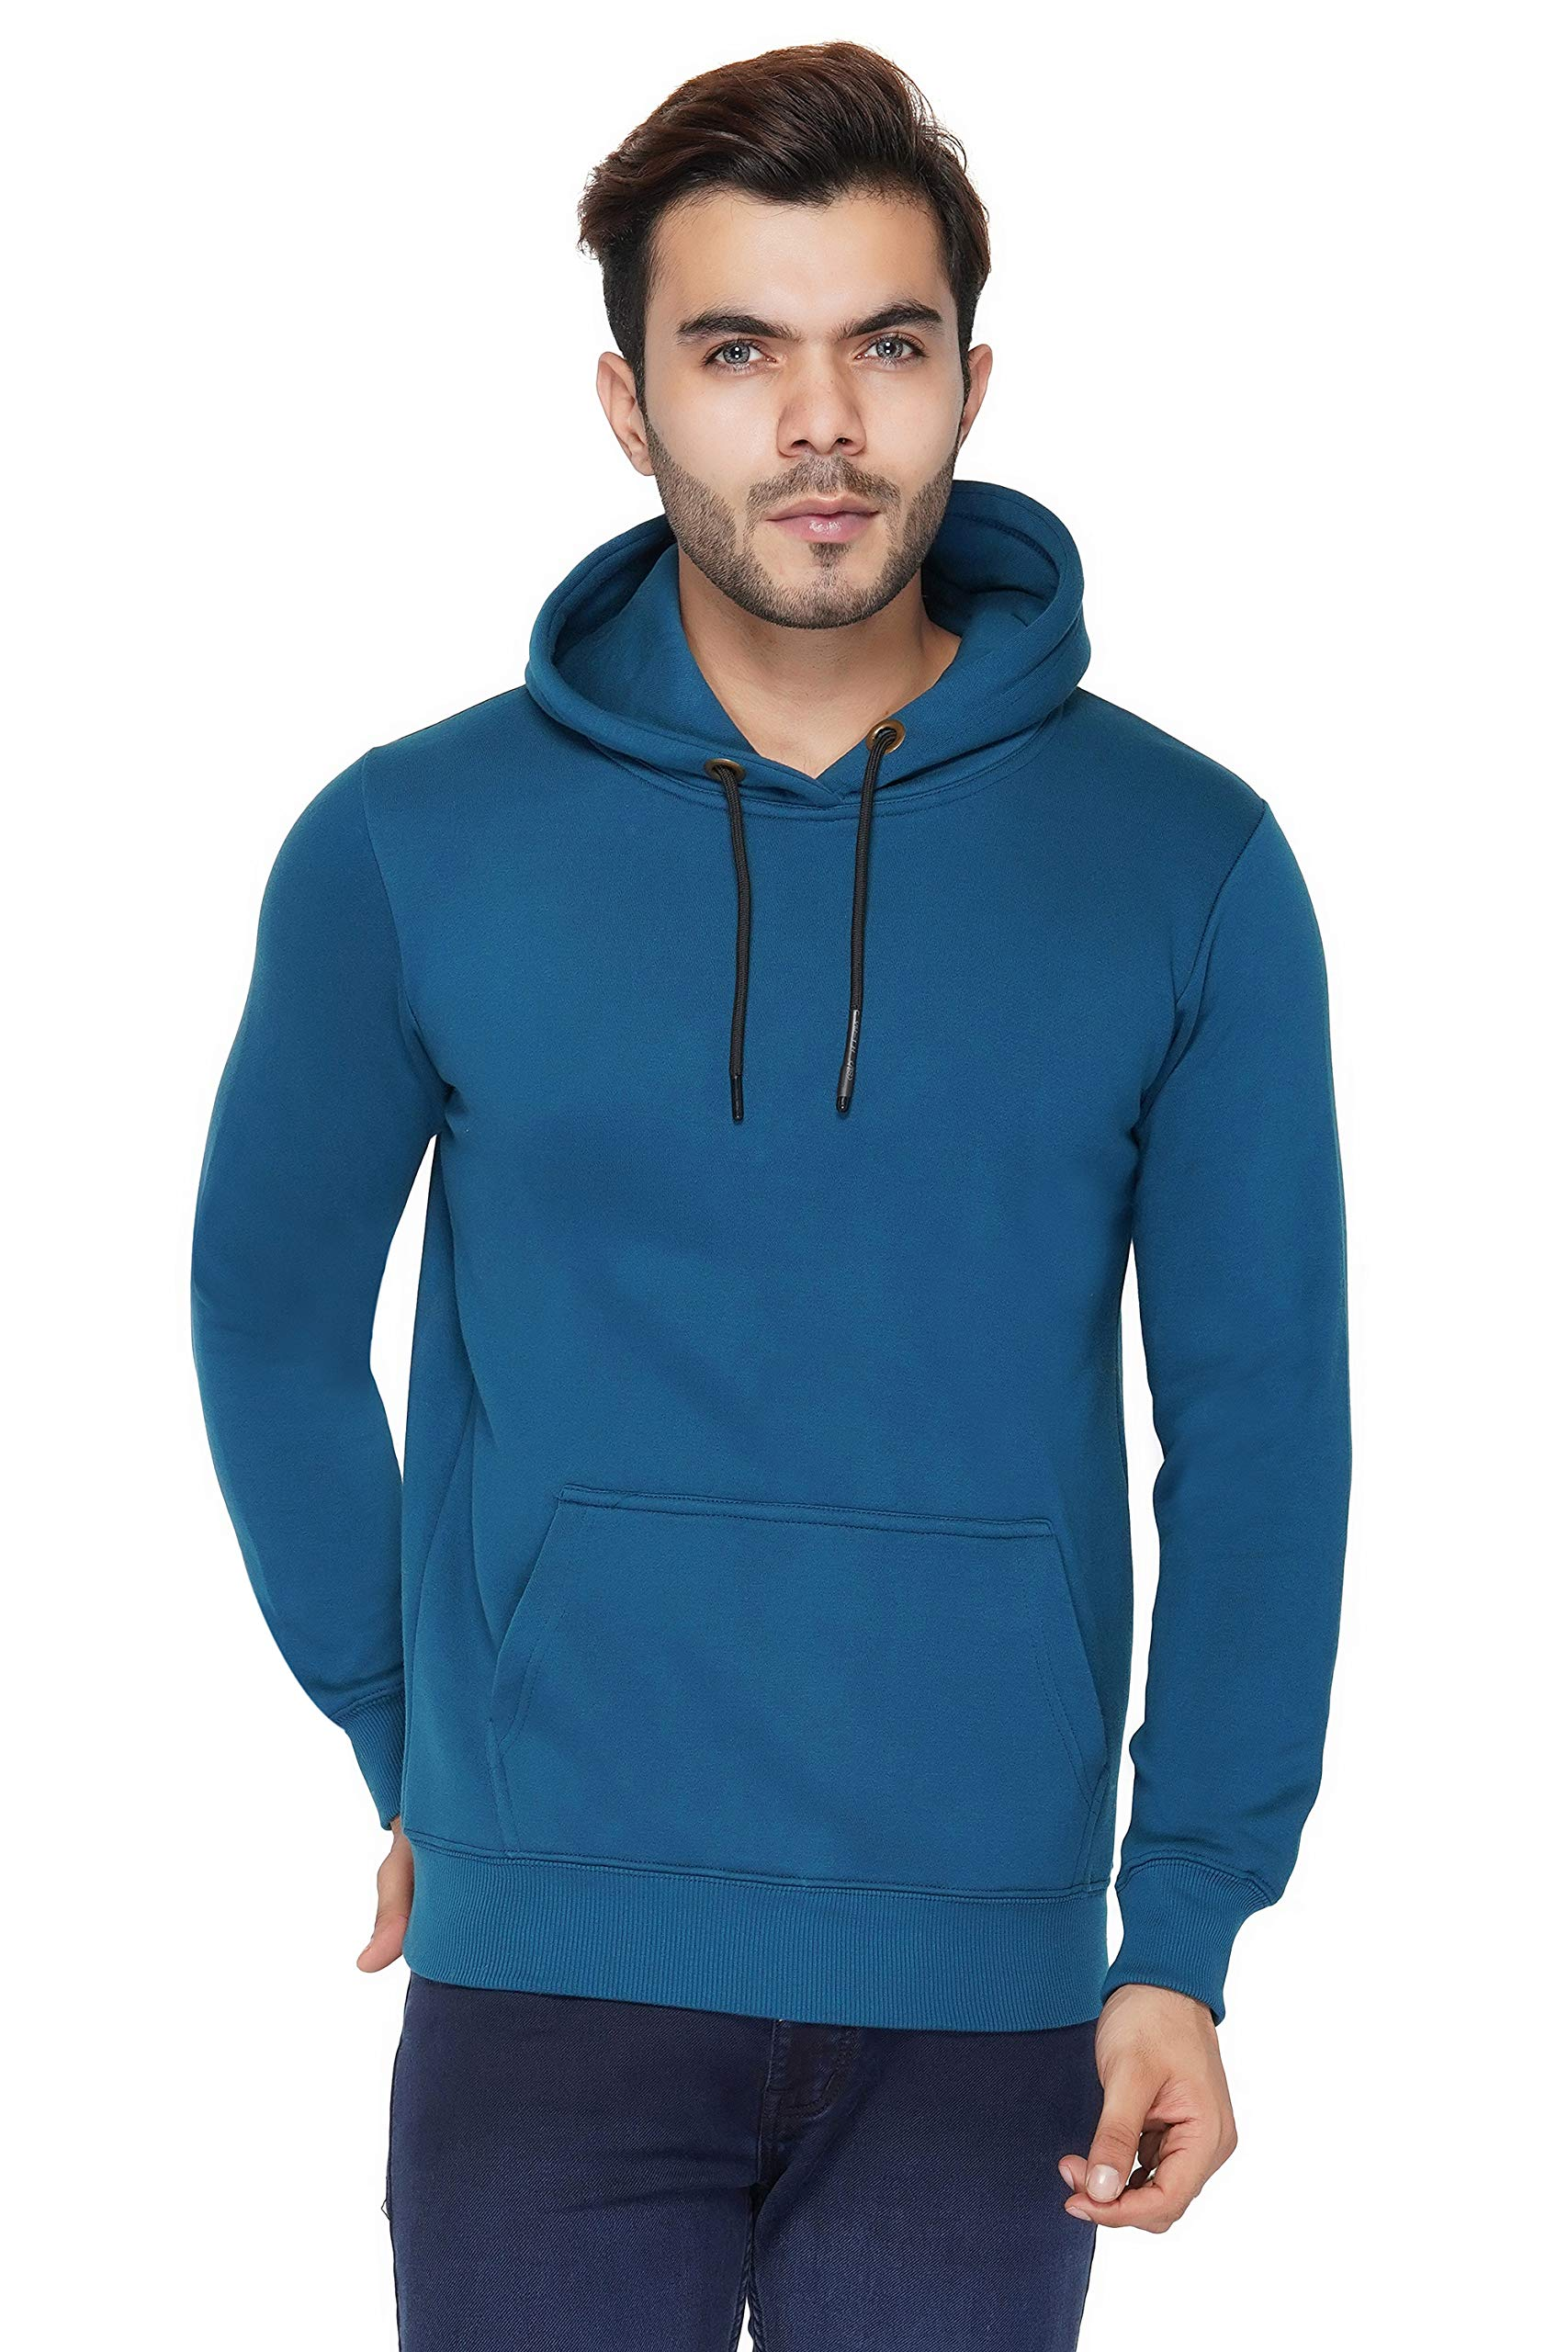 Urban Age Clothing Co. Men's Cotton Blend Fleece Plain Hoodie with Pouch Pockets Sweatshirt for Winters Temperature 0 Degrees to 25 Degrees... (Sailor Blue, Small) (B07XYGV6LC) Amazon Price History, Amazon Price Tracker